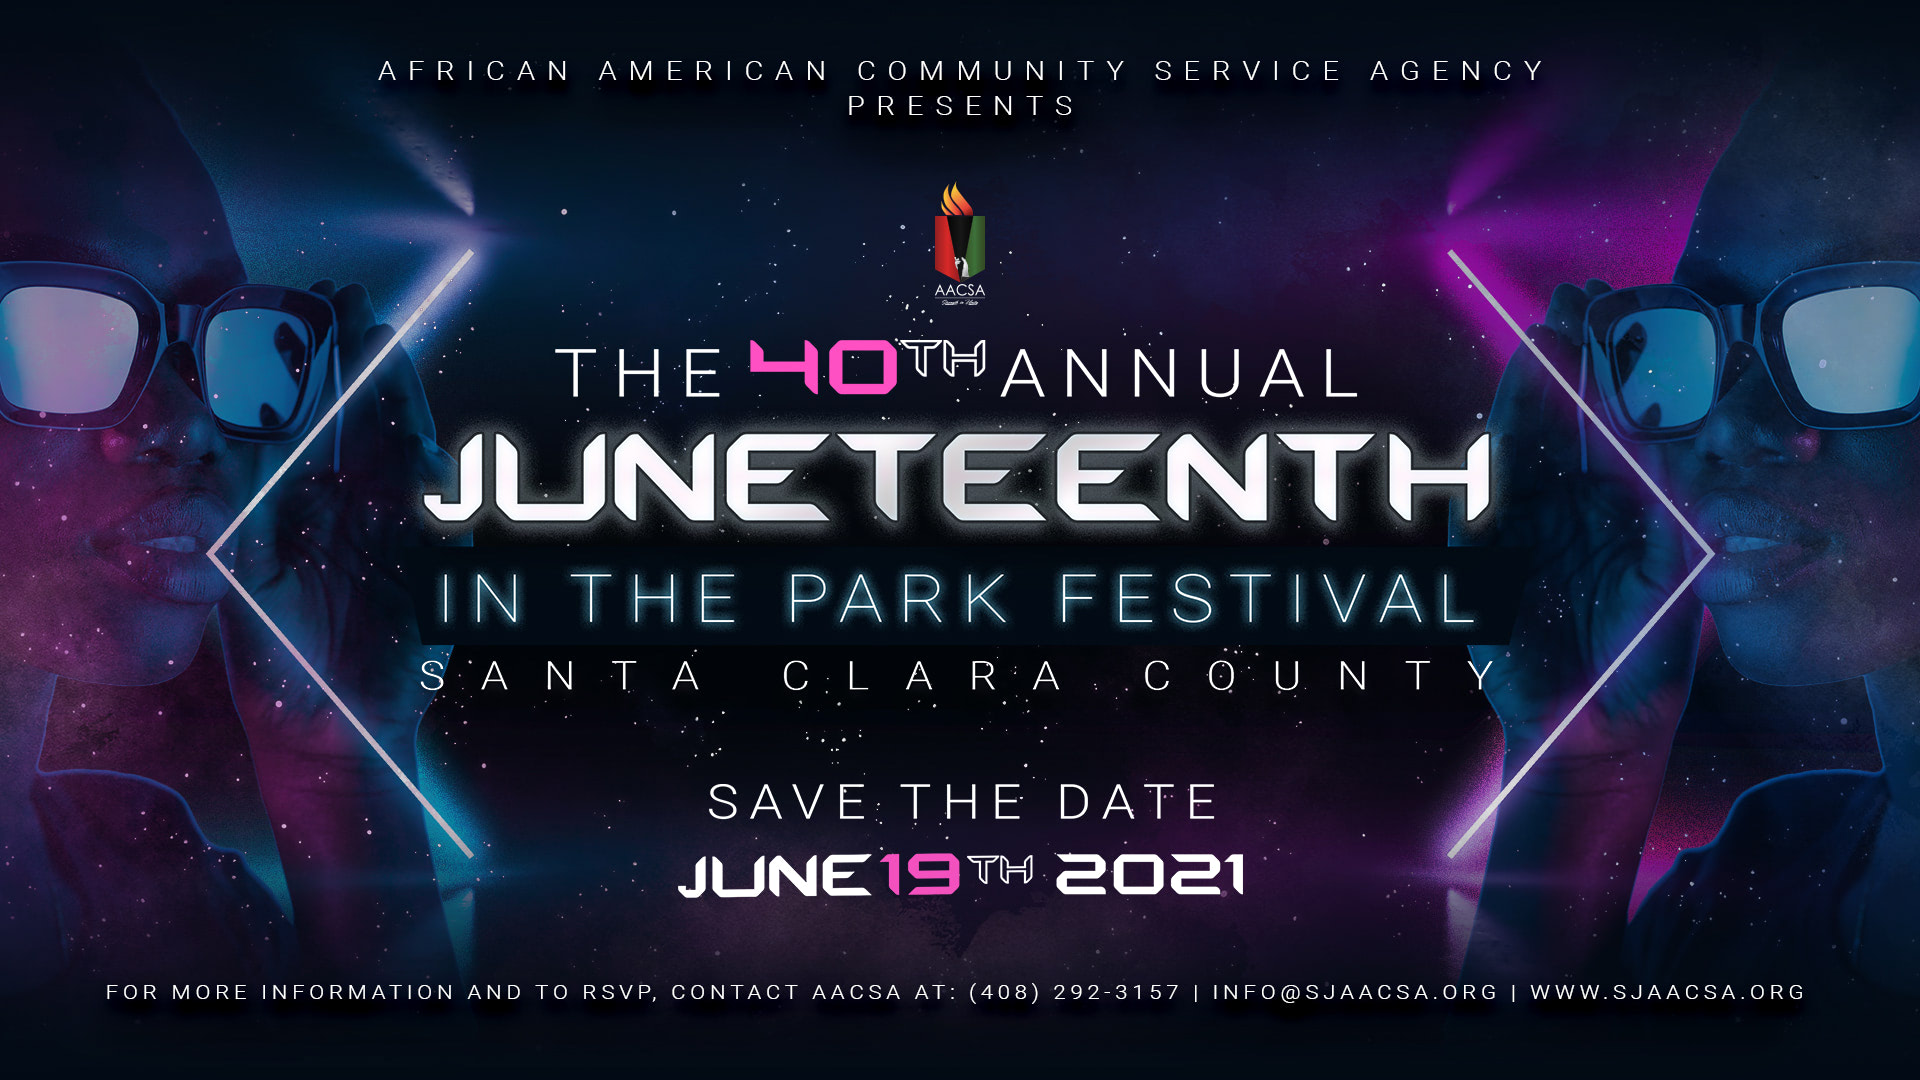 Save The Date Banner for the AACSA Event: The 40th Annual Juneteenth in the Park Festival. Event date: June 19th, 2021. visit www.bayareajuneteenth.org.